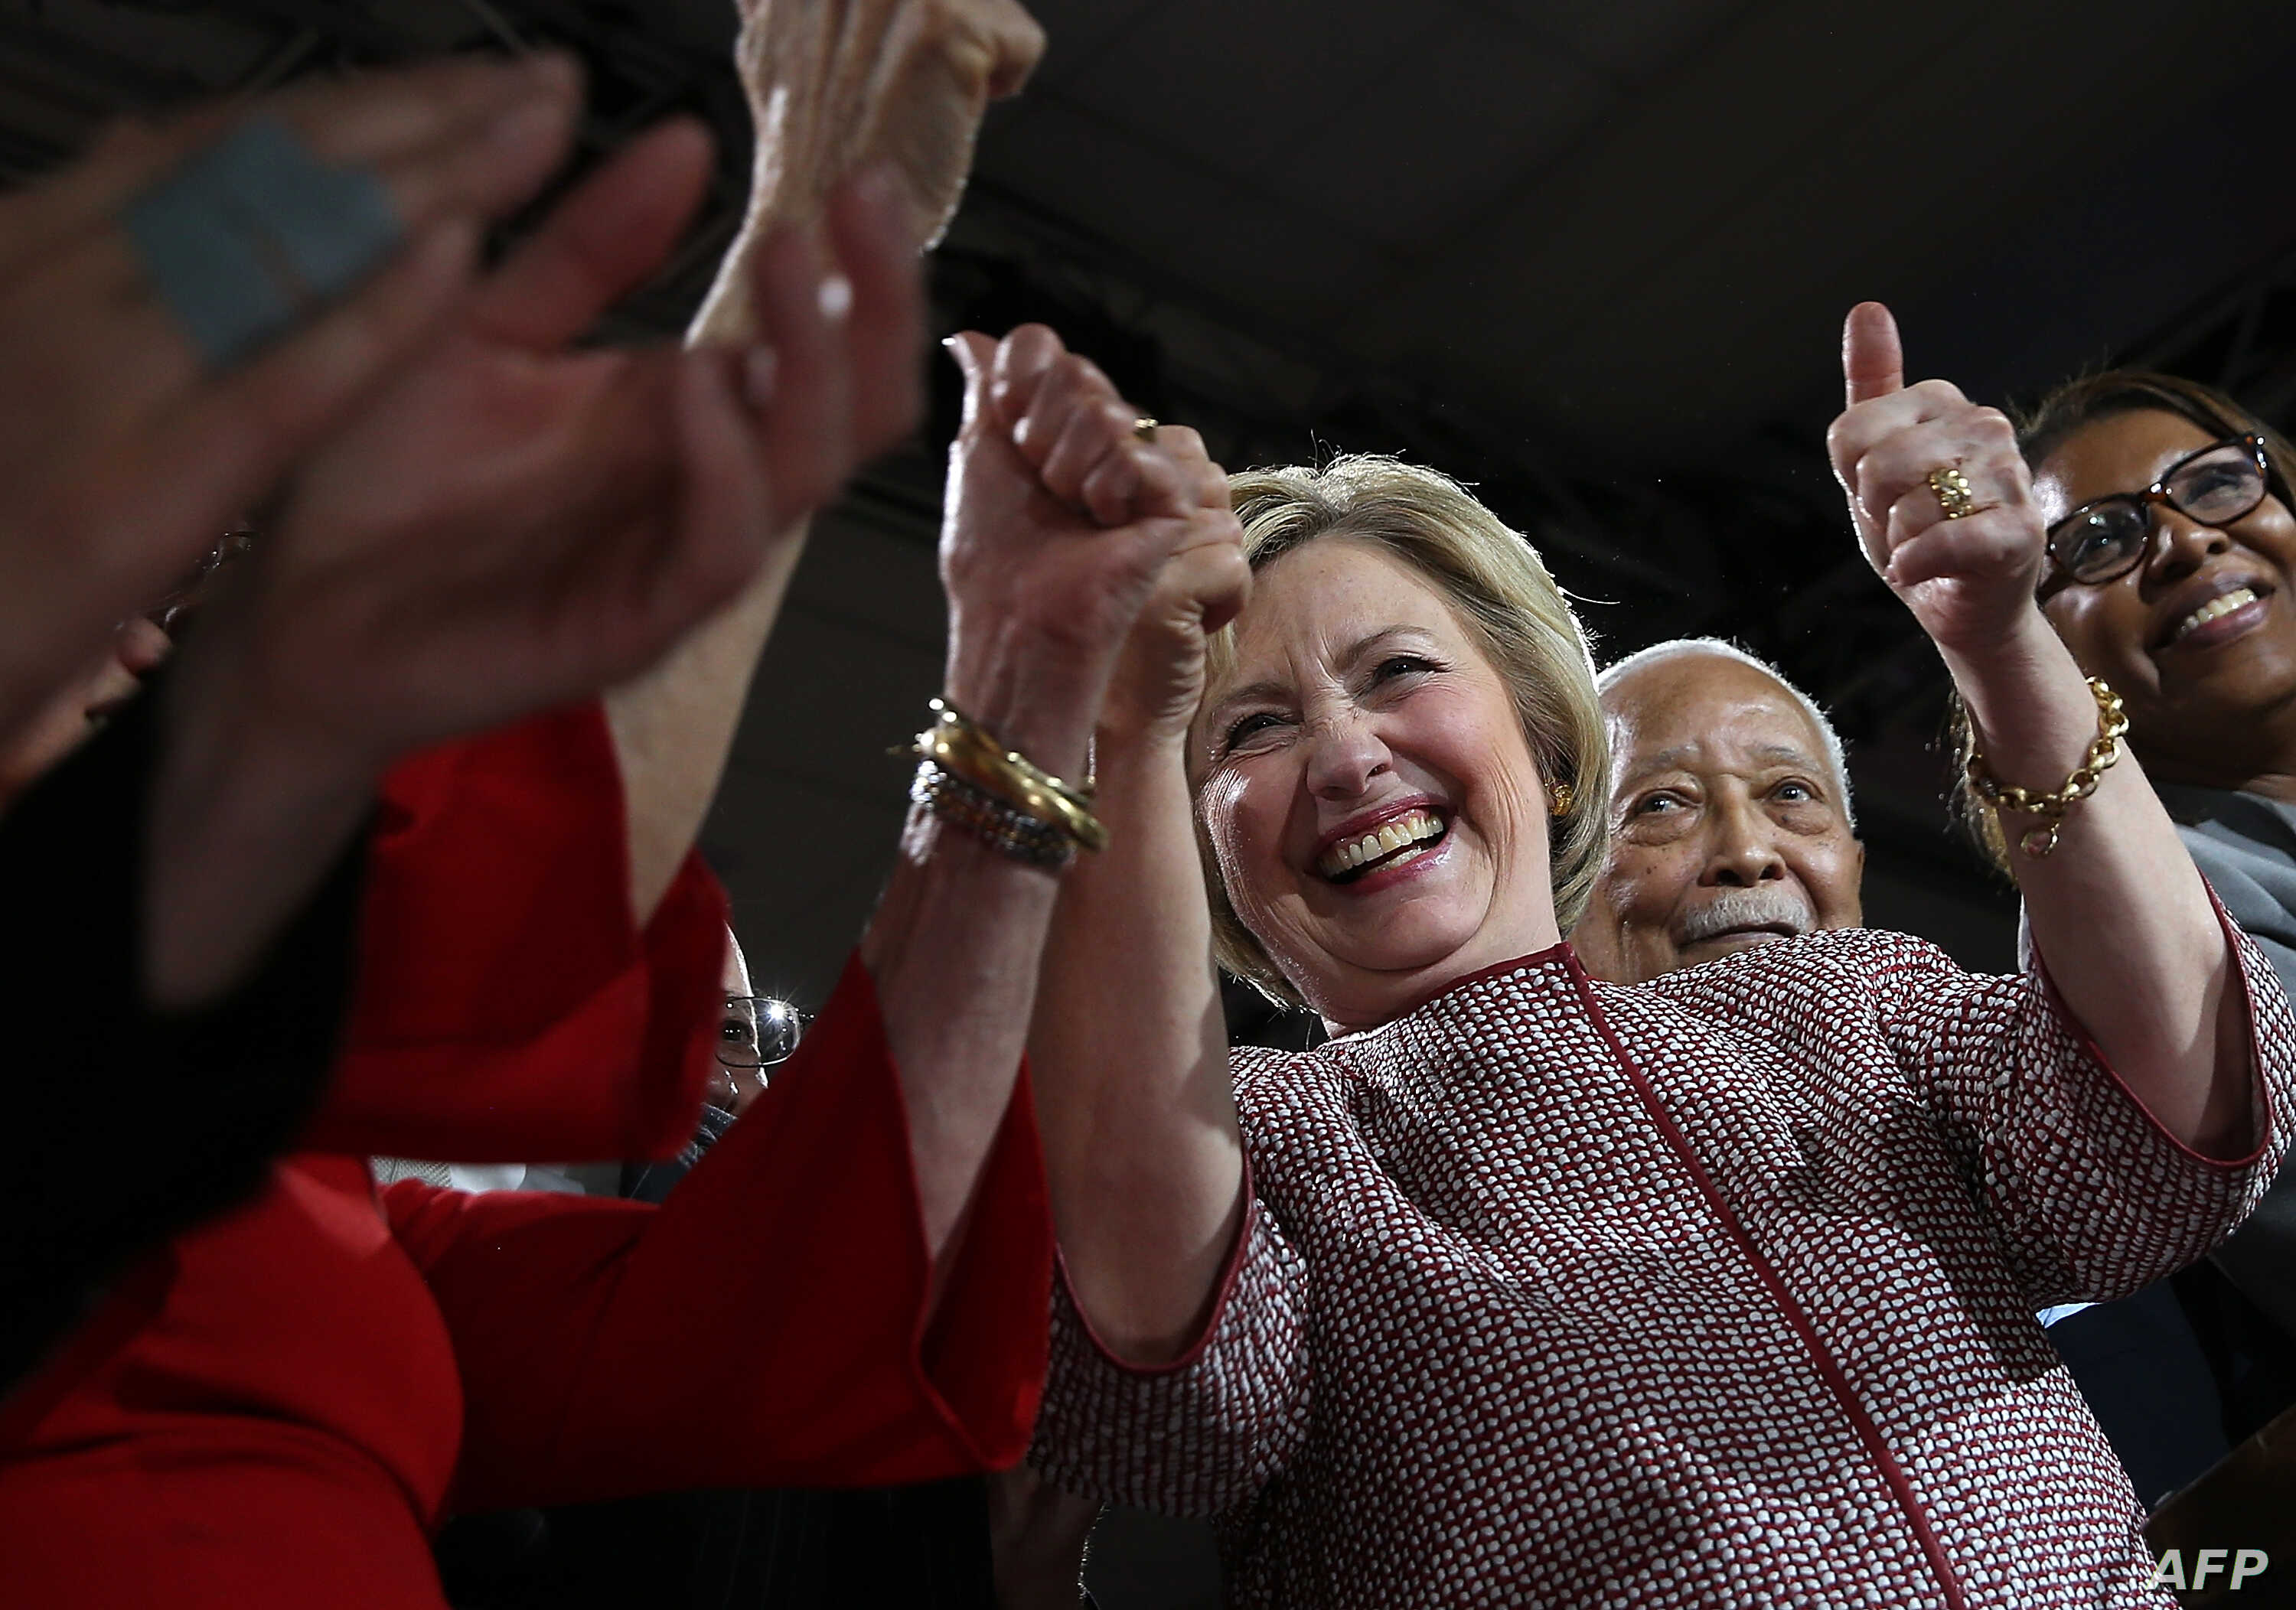 Democratic presidential candidate former Secretary of State Hillary Clinton greets supporters during a primary election night gathering on April 19, 2016 in New York City